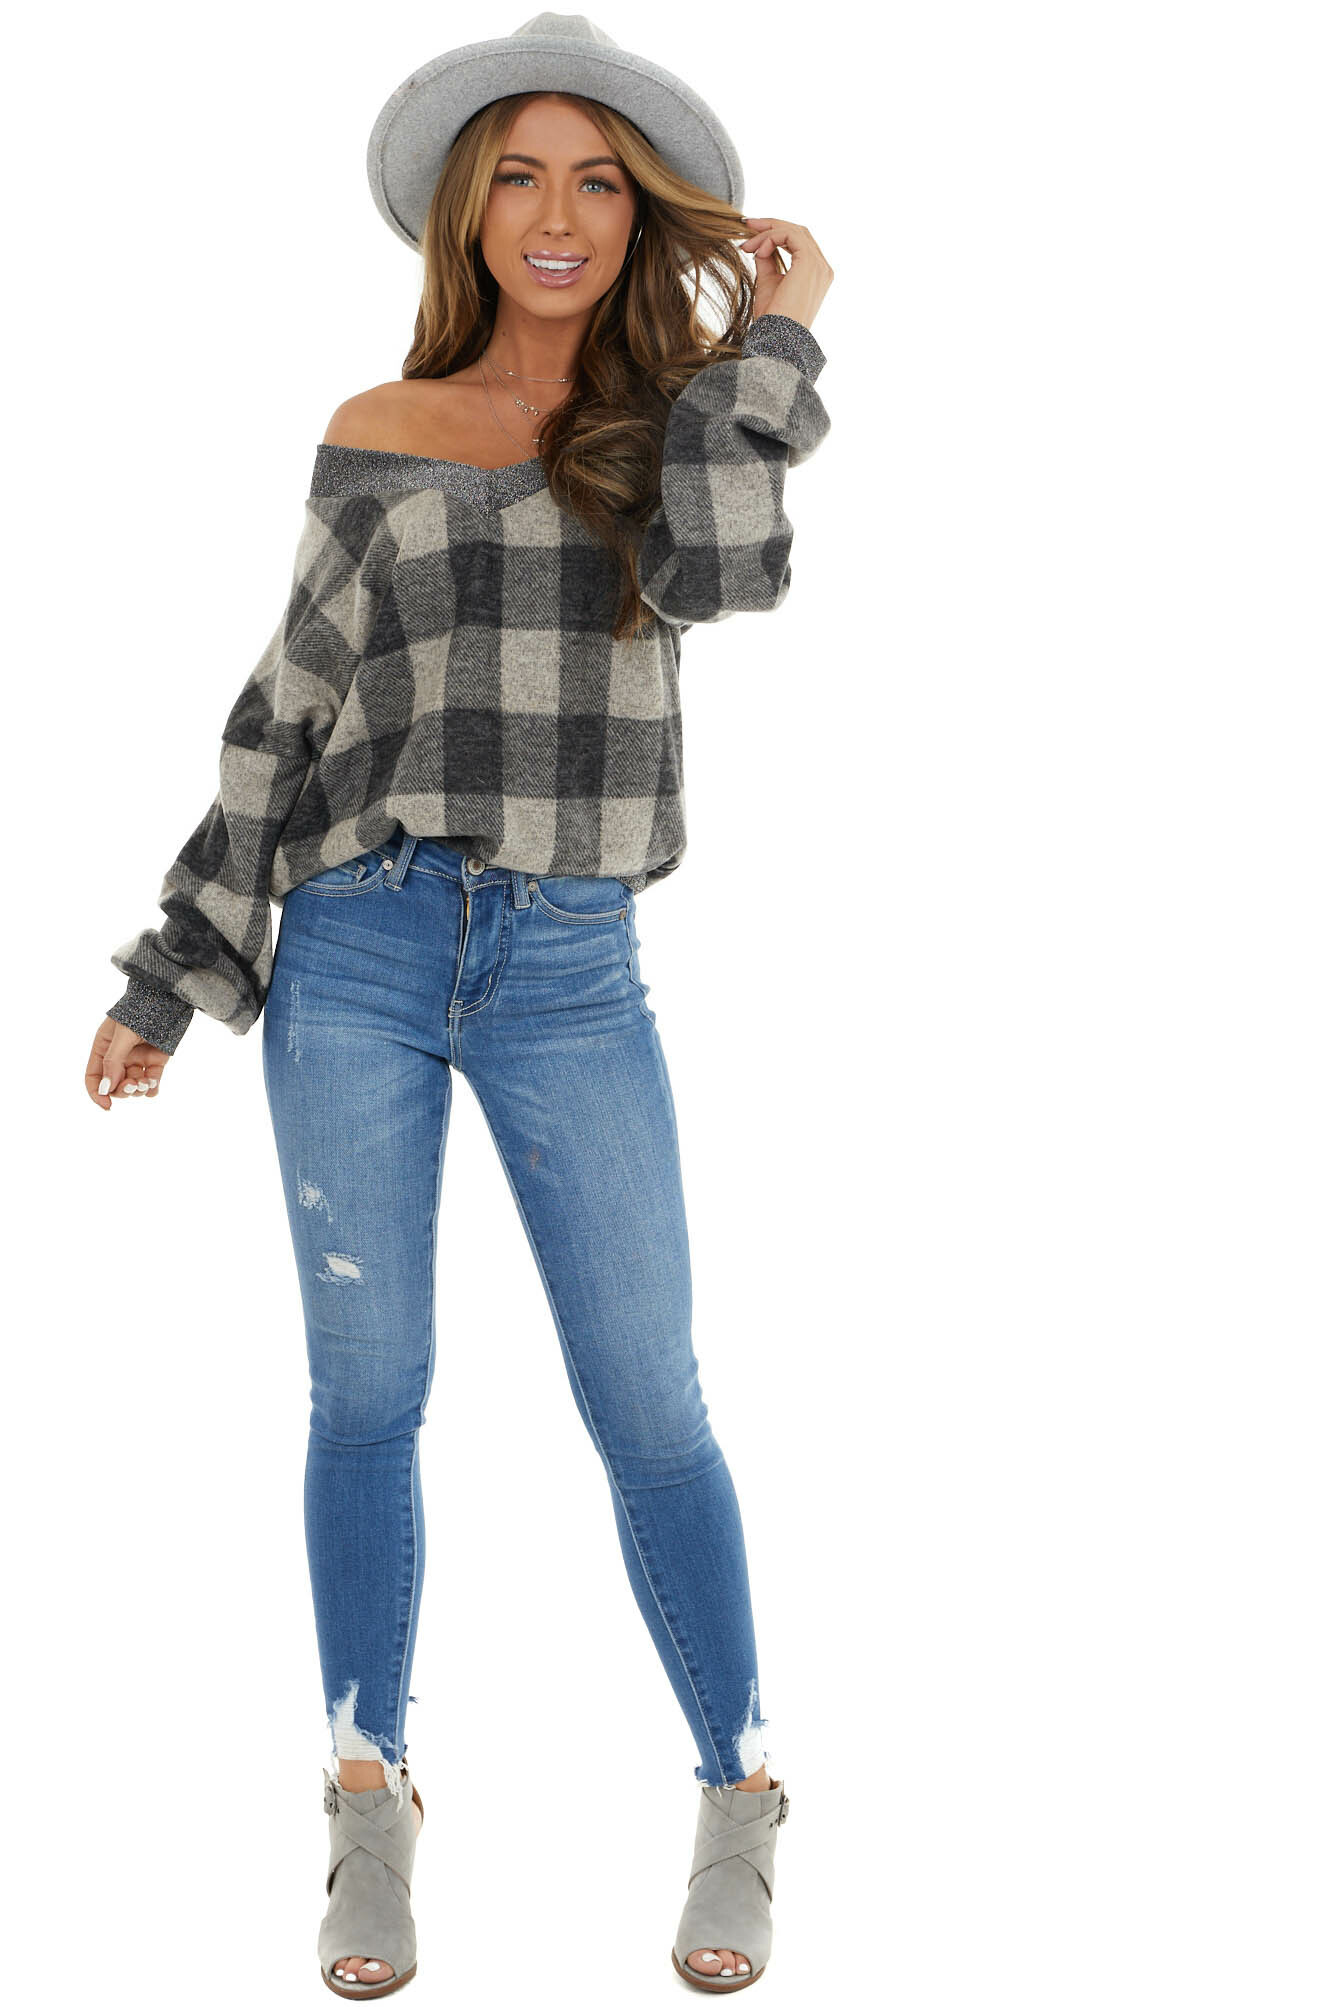 Charcoal and Oatmeal Plaid Top with Silver Thread Contrasts